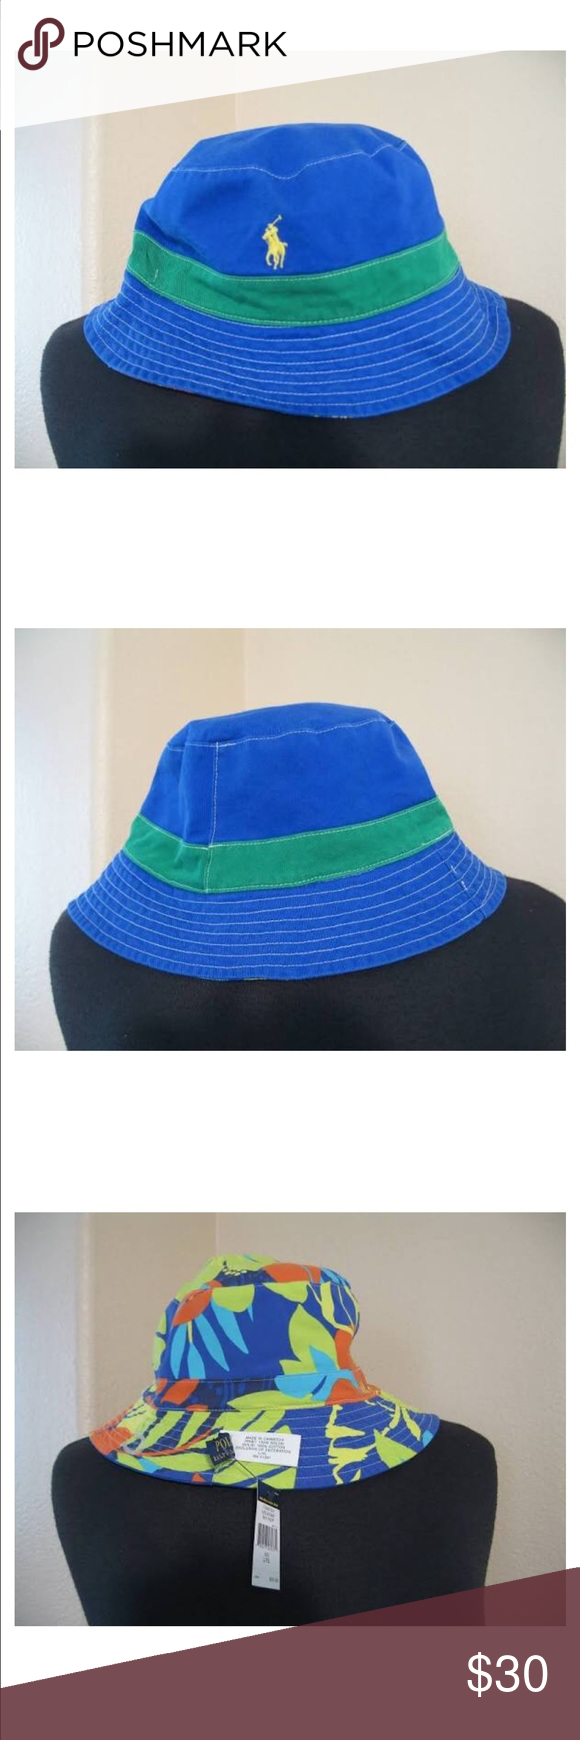 6ccc15991 Polo Ralph Lauren reversible bucket Hat B87 With a vibrant allover ...